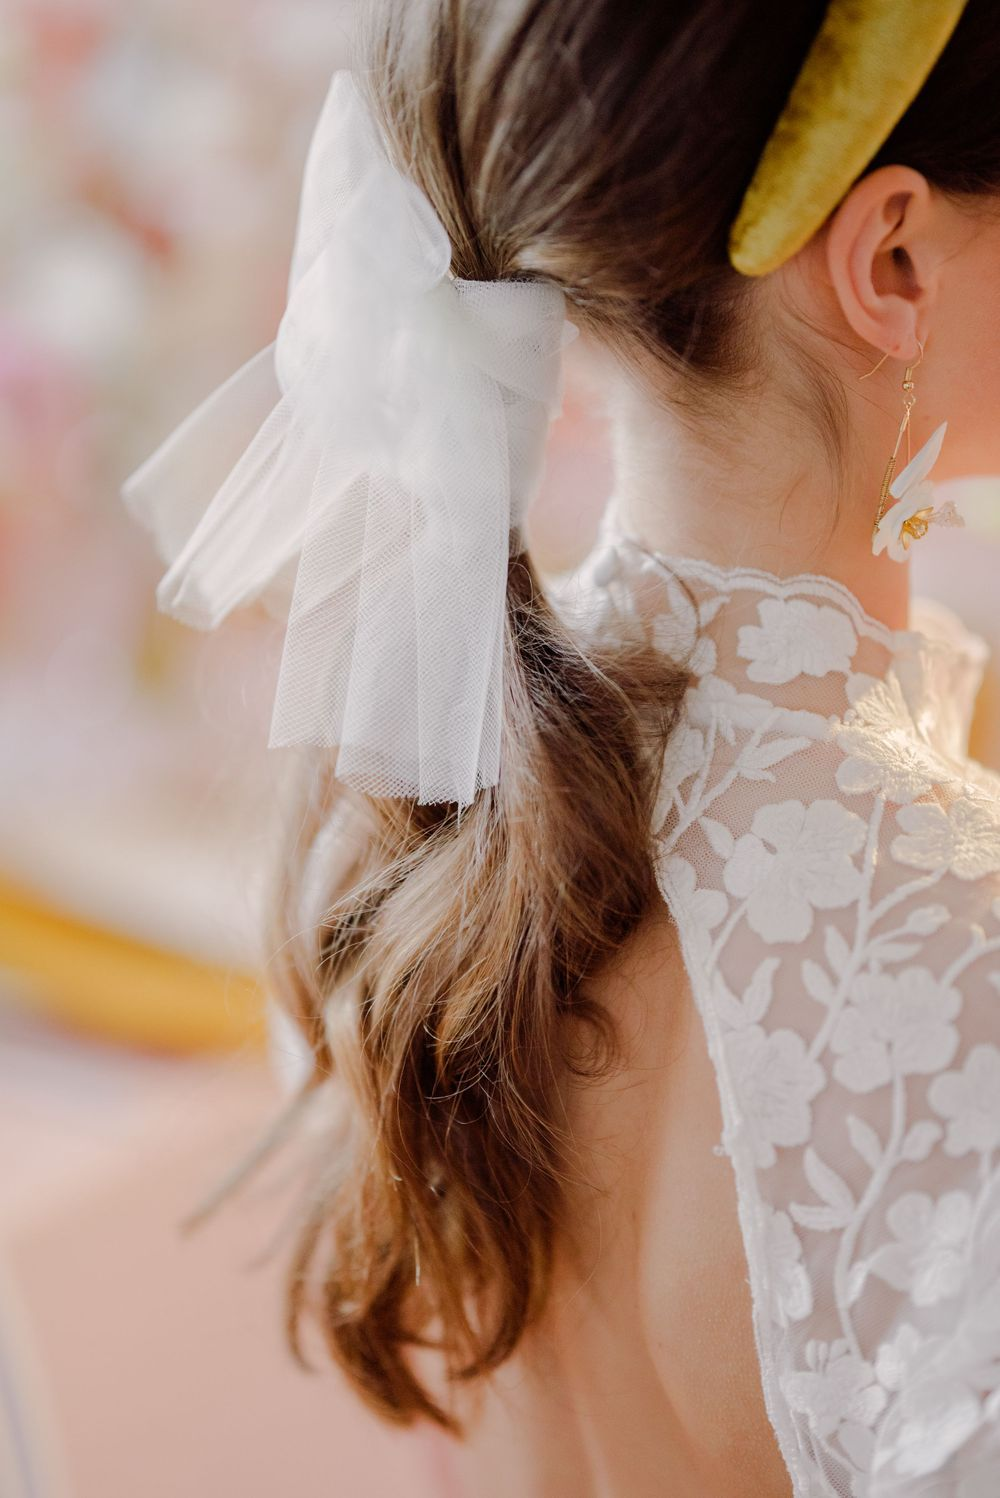 bridal hair style trend with loose curls and fashionable statement bow detail